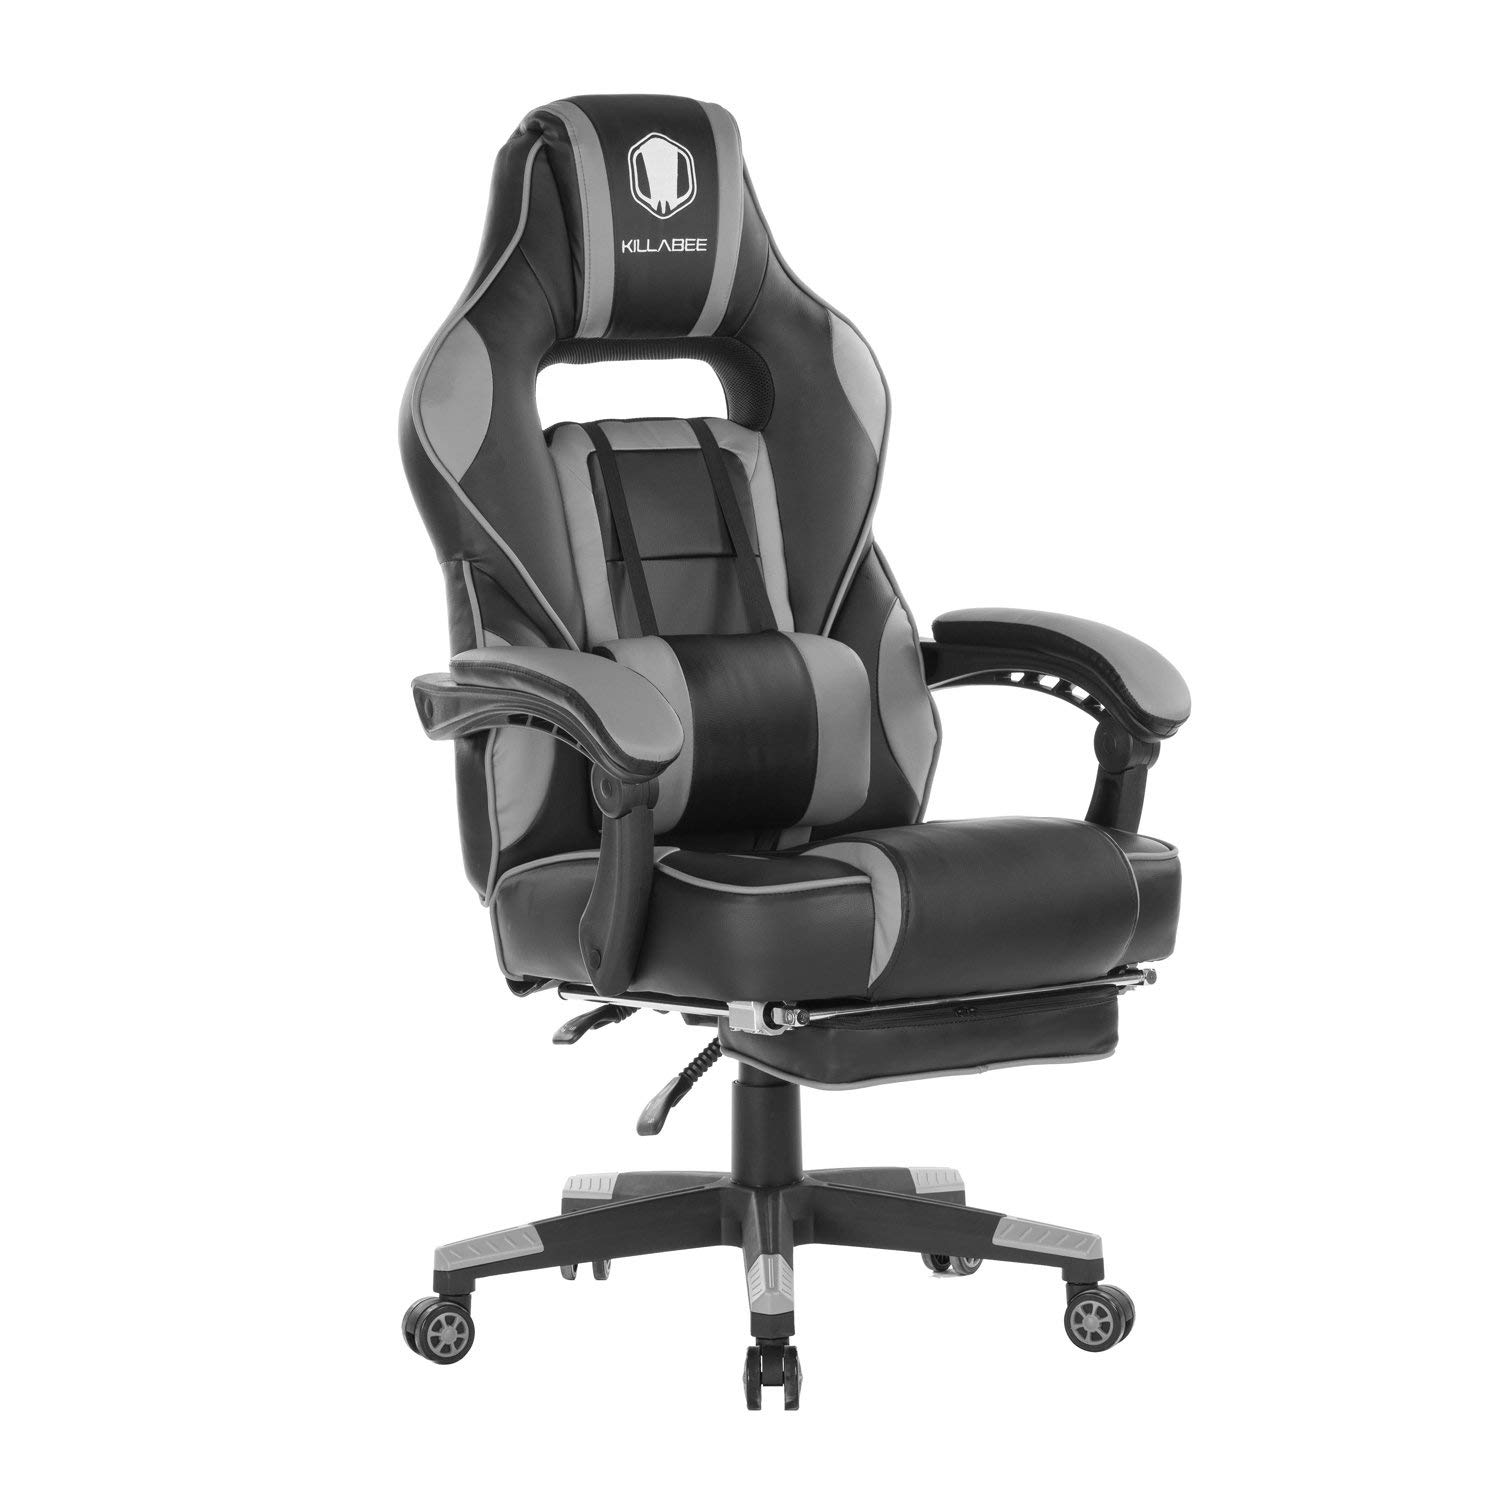 KILLABEE 9015 Gaming Chair - $139.99 after coupon - $30 off or 18%